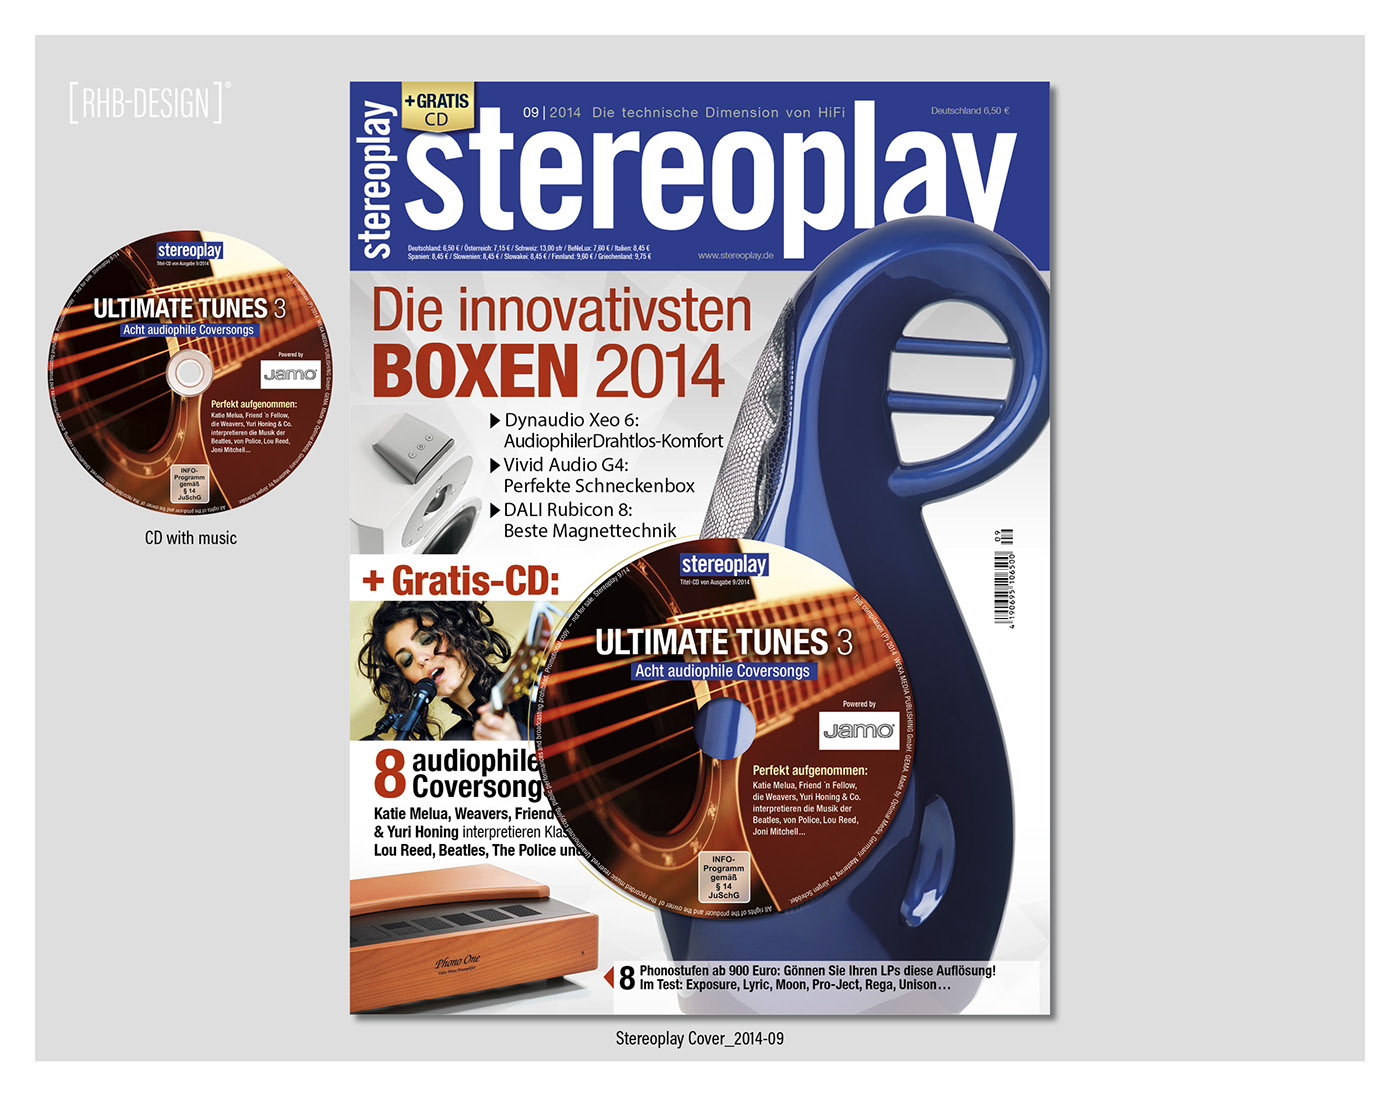 COVER-DESIGN STEREOPLAY on Behance